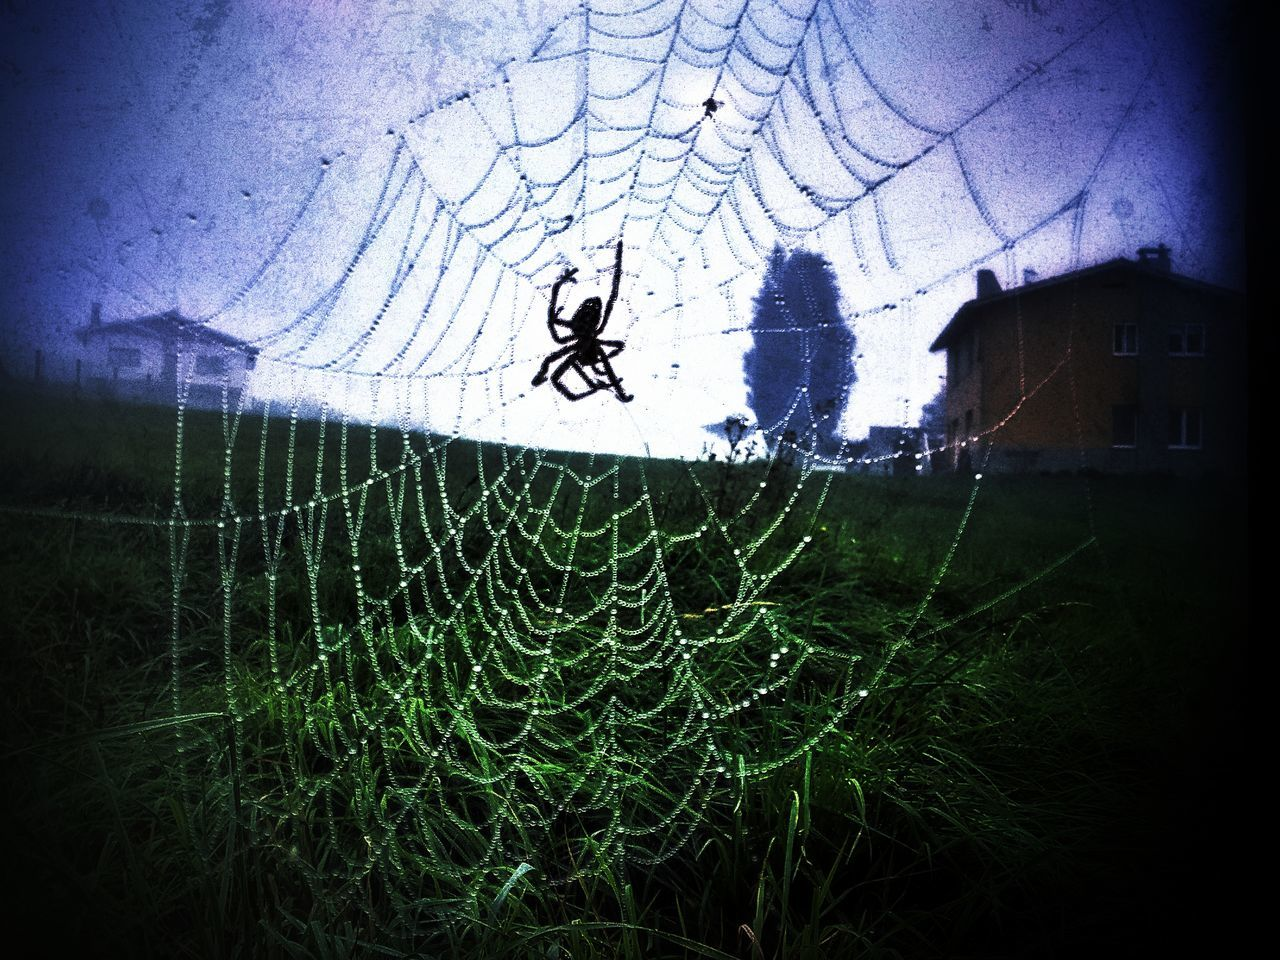 Animal Themes Beauty In Nature Close-up Day Drop EyeEm Nature Lover Fragility Grass Lumicar Nature No People Outdoors Sky Spider Spider Web Survival Tree Water Web Wet